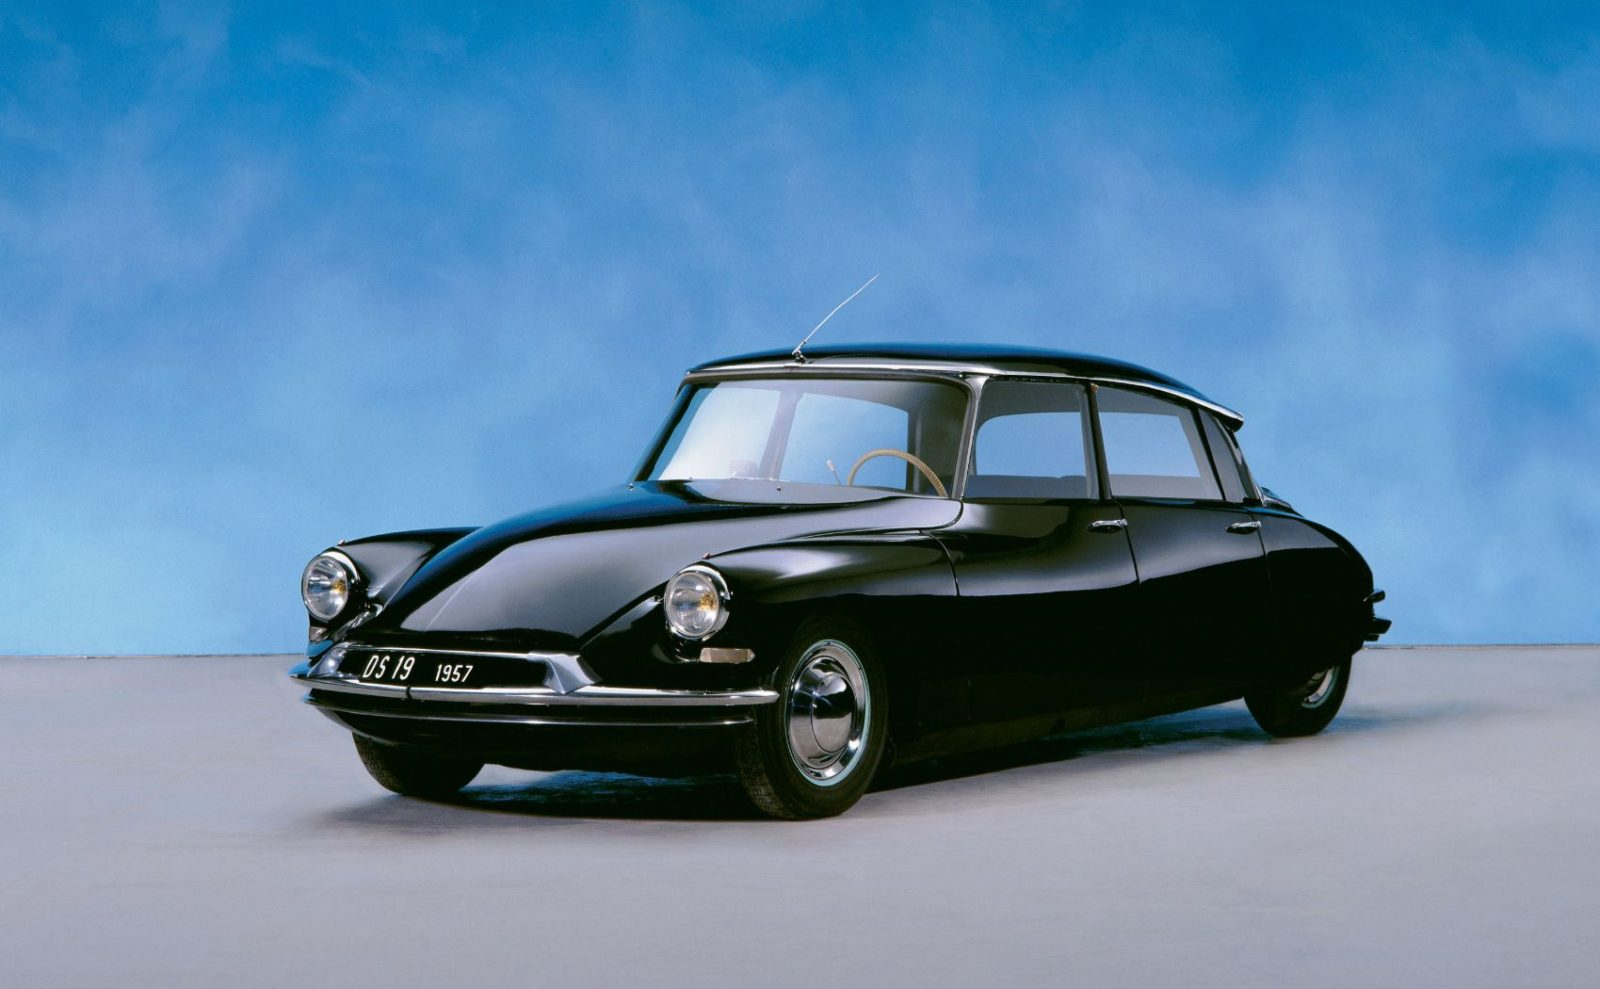 a-look-back-at-the-citroen-ds:-arguably-the-most-innovative-car-ever-built